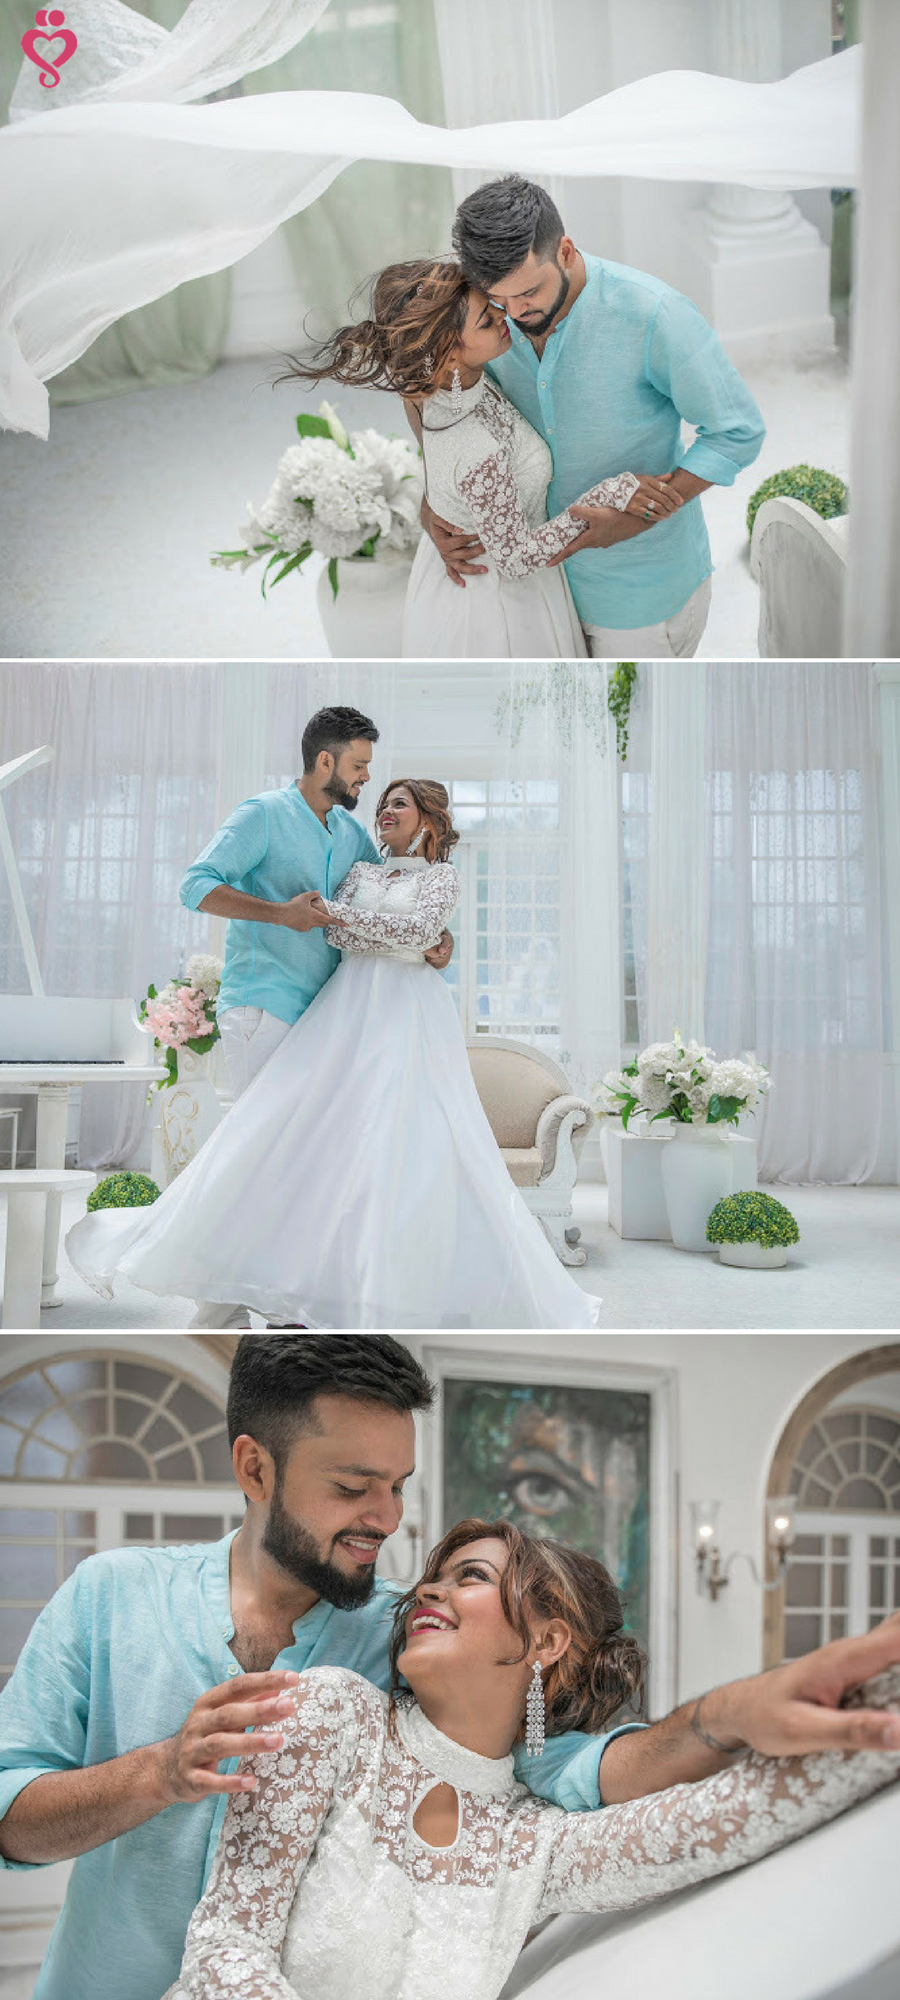 Love Story Shot - Bride and Groom in a Nice Outfits. Best Locations ...